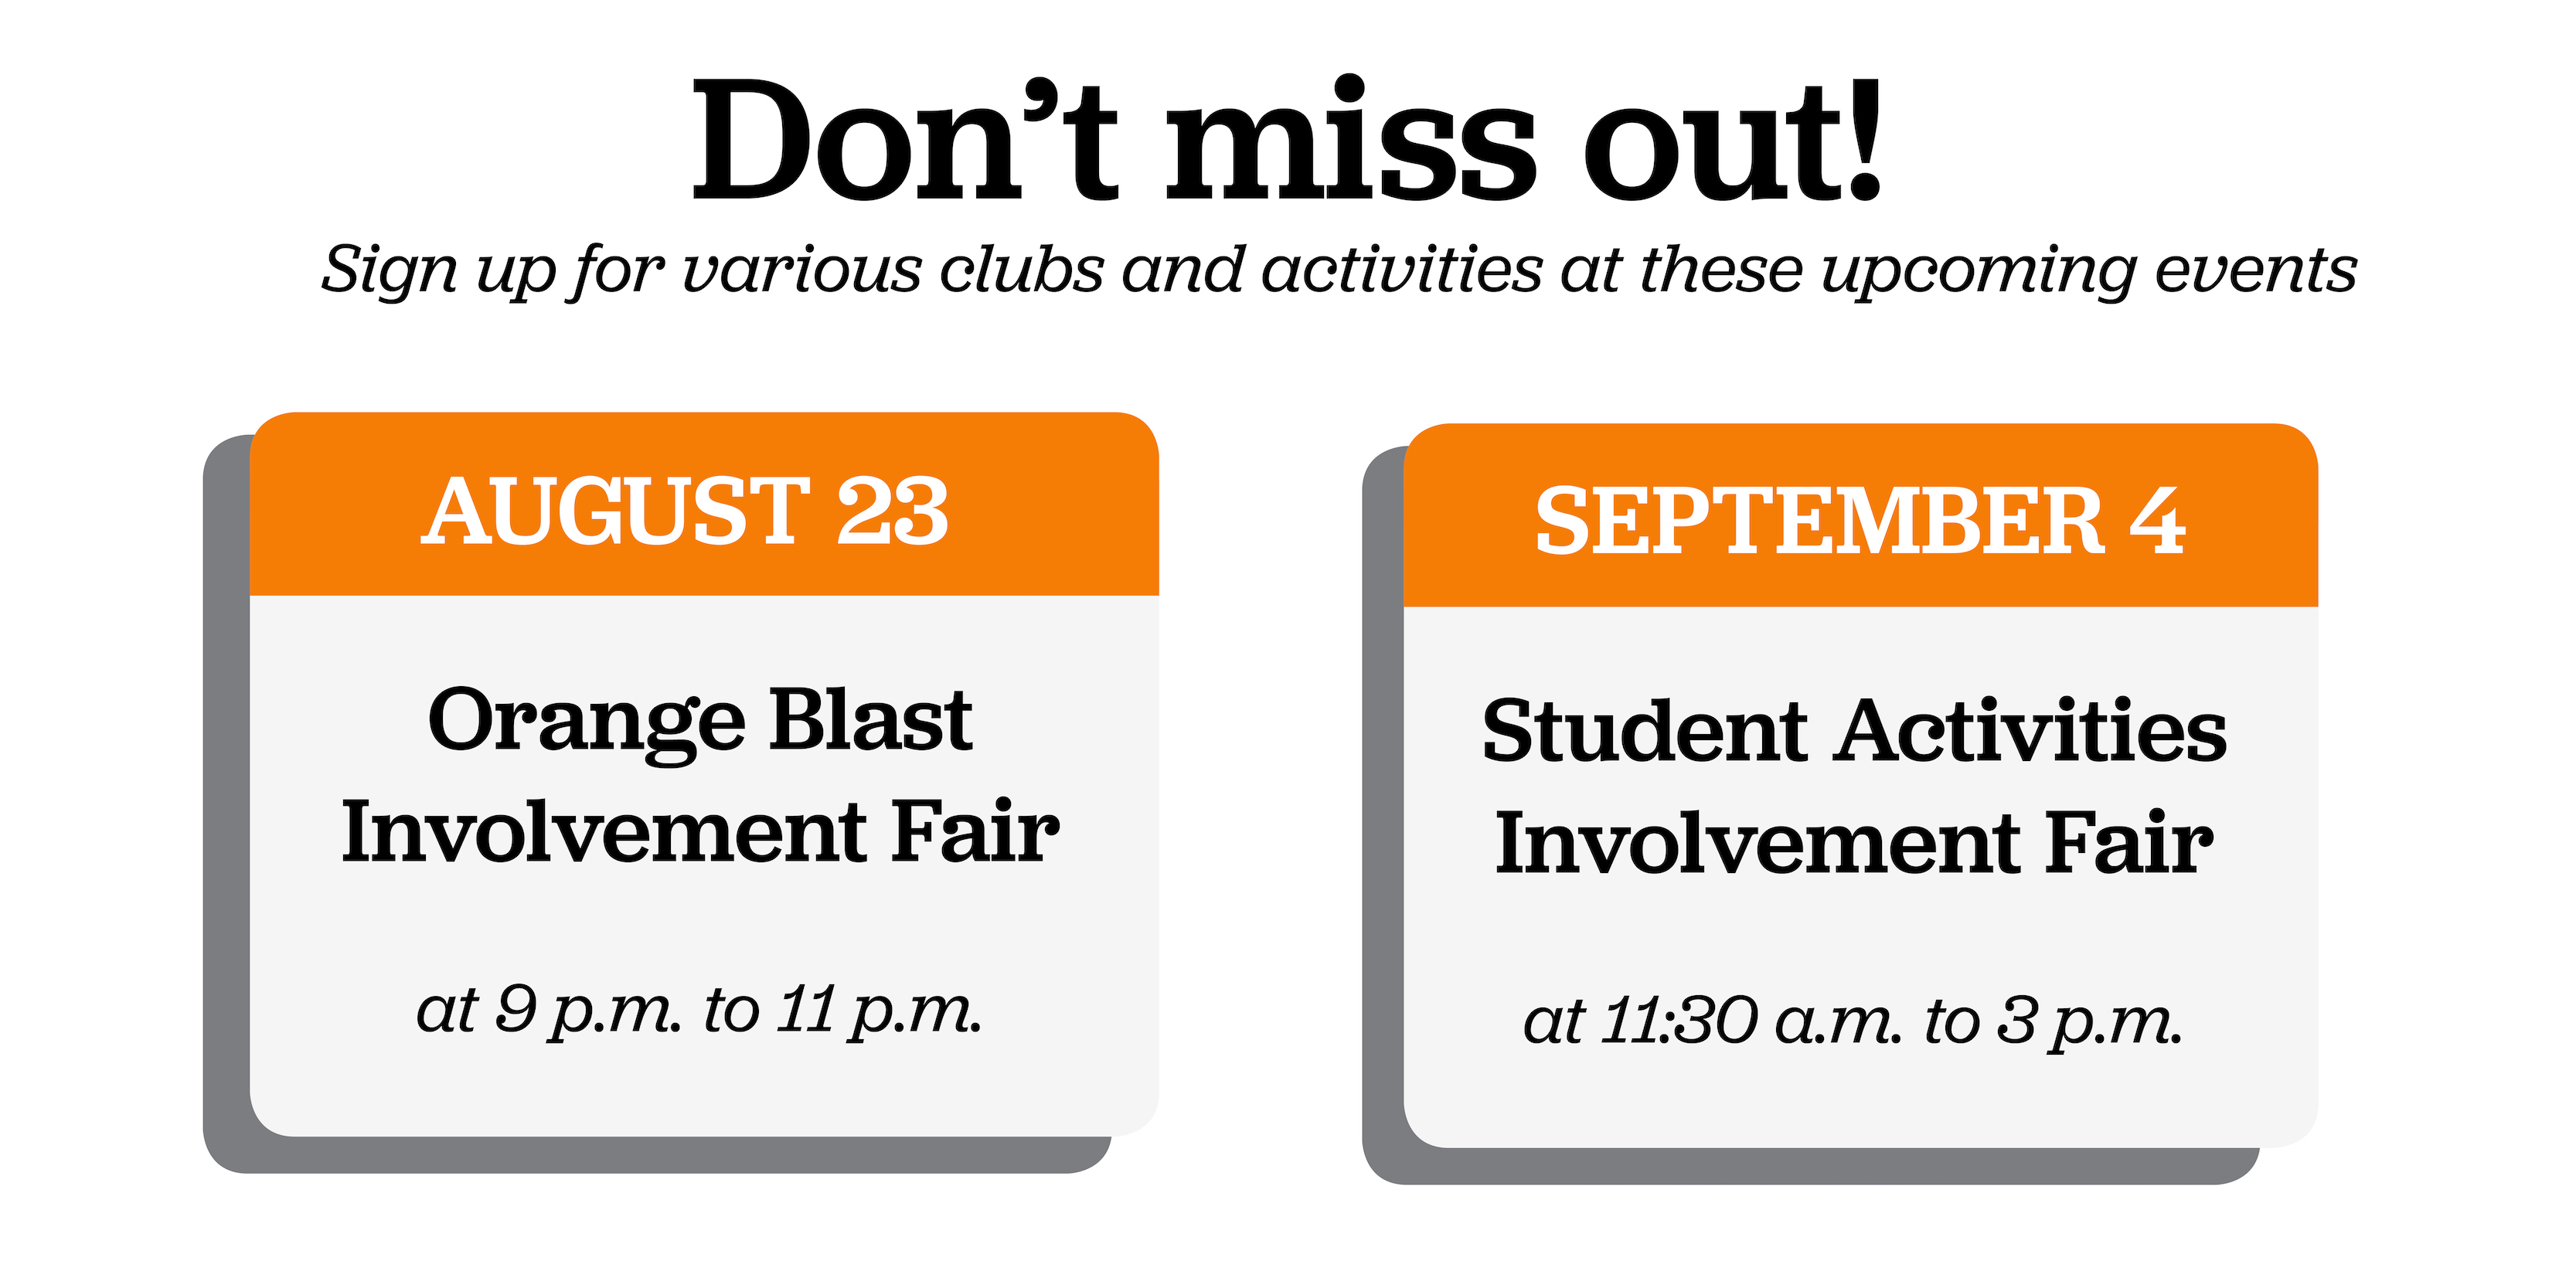 With more than 300 clubs at SU, joining one can help adjust to college life